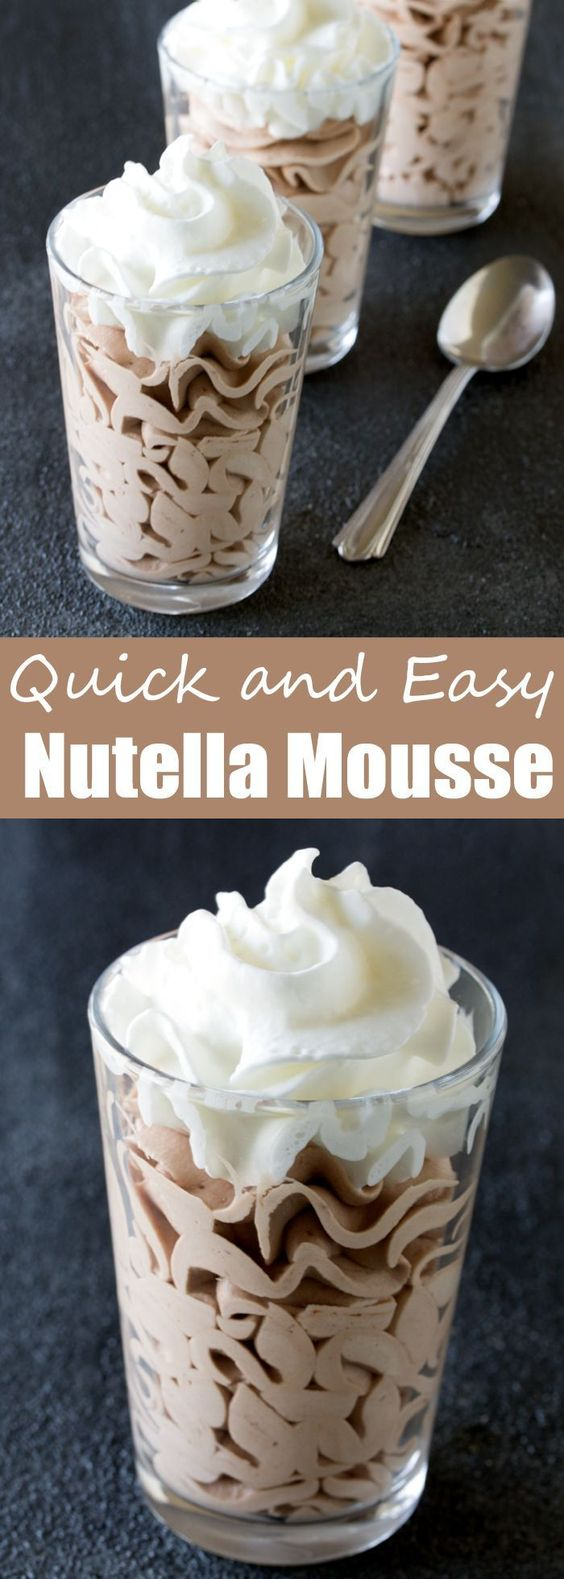 QUICK AND EASY NUTELLA MOUSSE #quickrcipes #easyrecipes #nutella #mousse #easyfoodrecipes